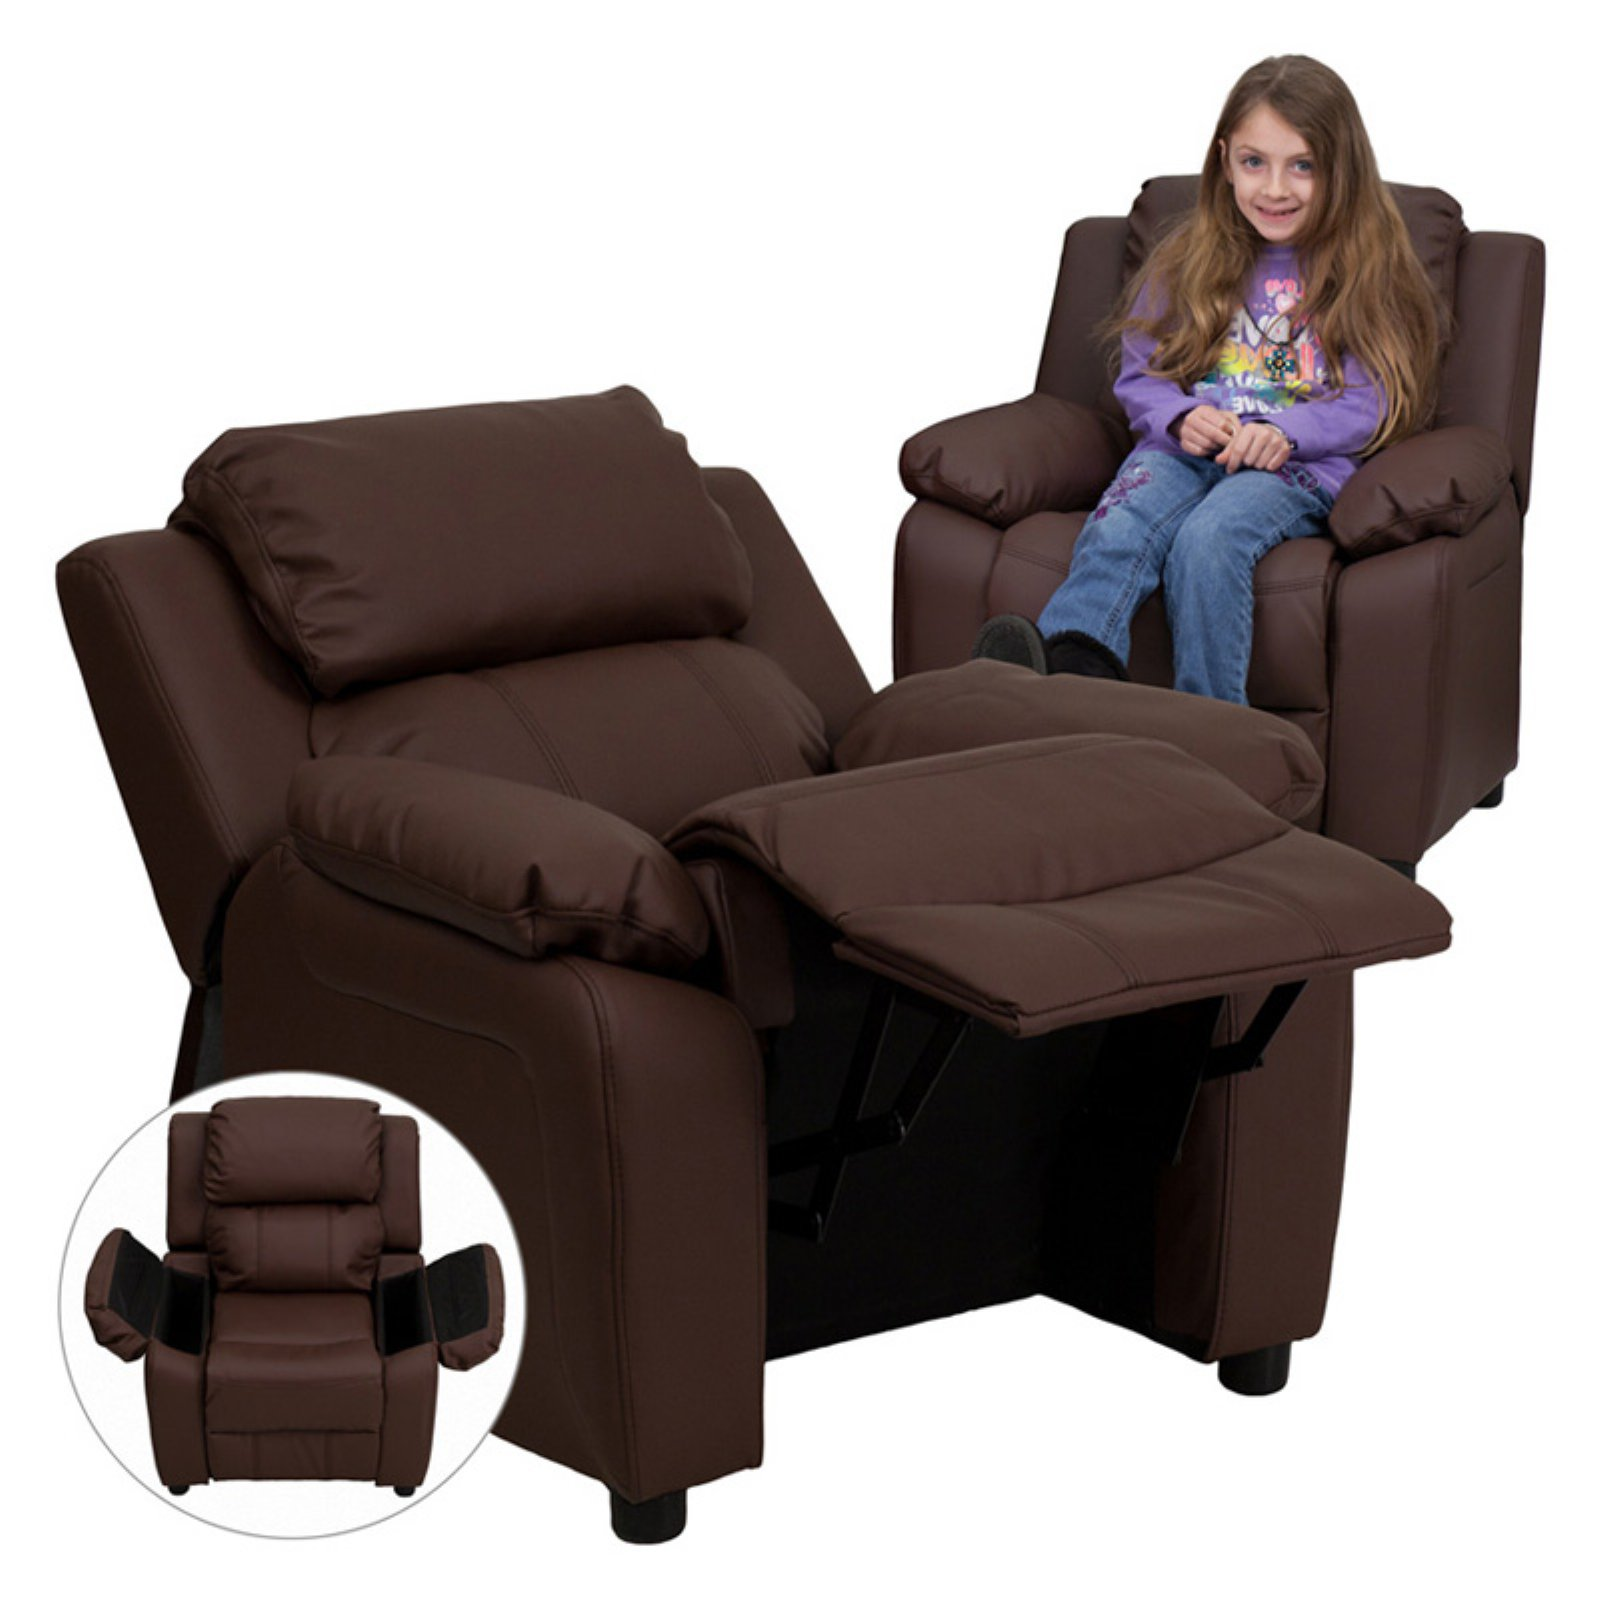 Flash Furniture Deluxe Heavily Padded Leather Kids Recliner with Storage Arms Brown by Flash Furniture